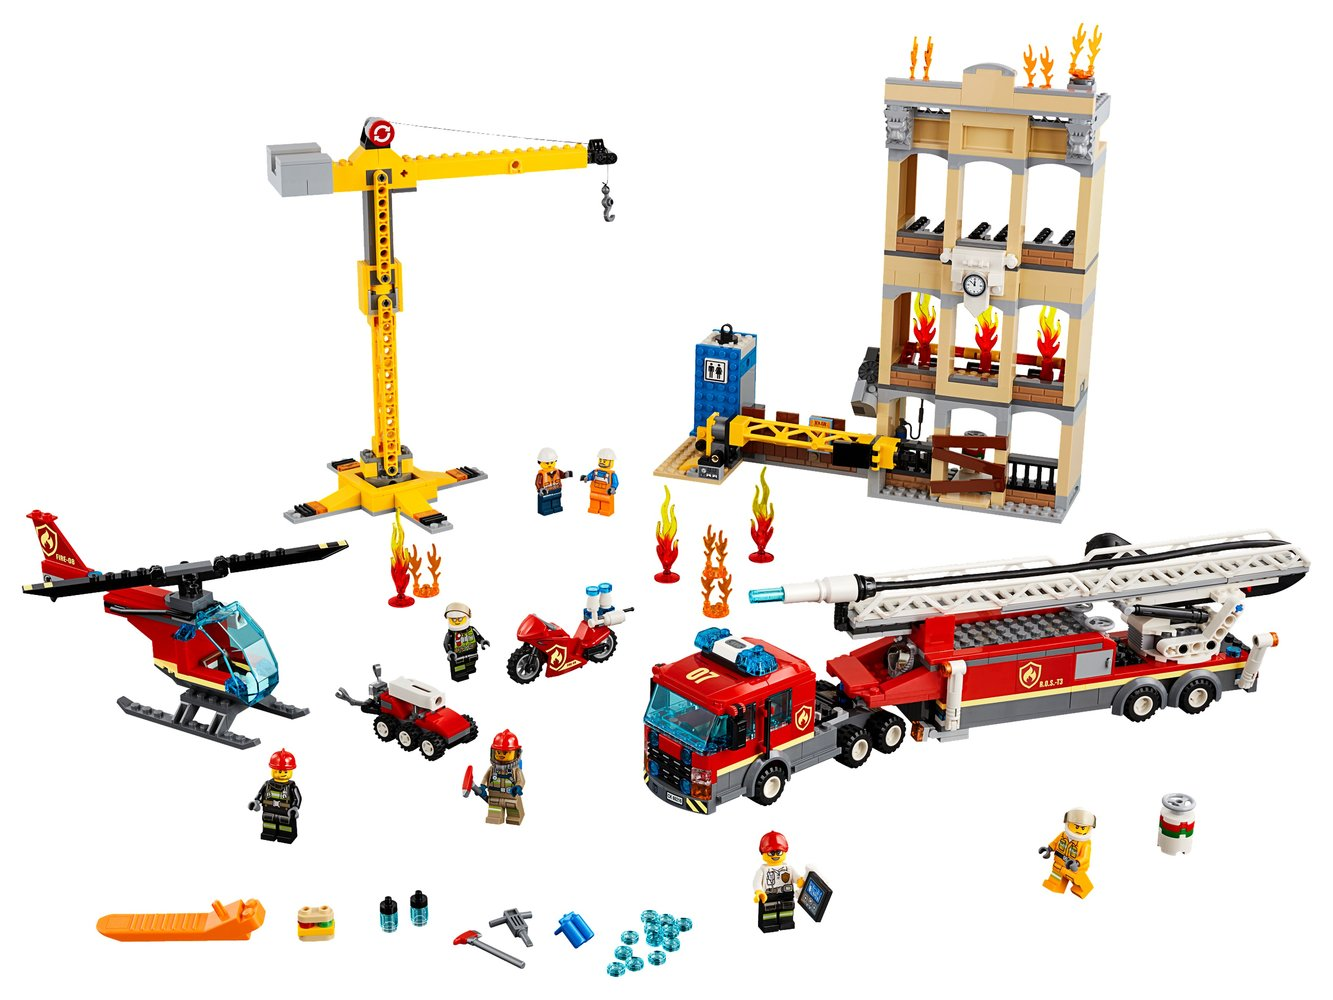 Downtown Fire Brigade